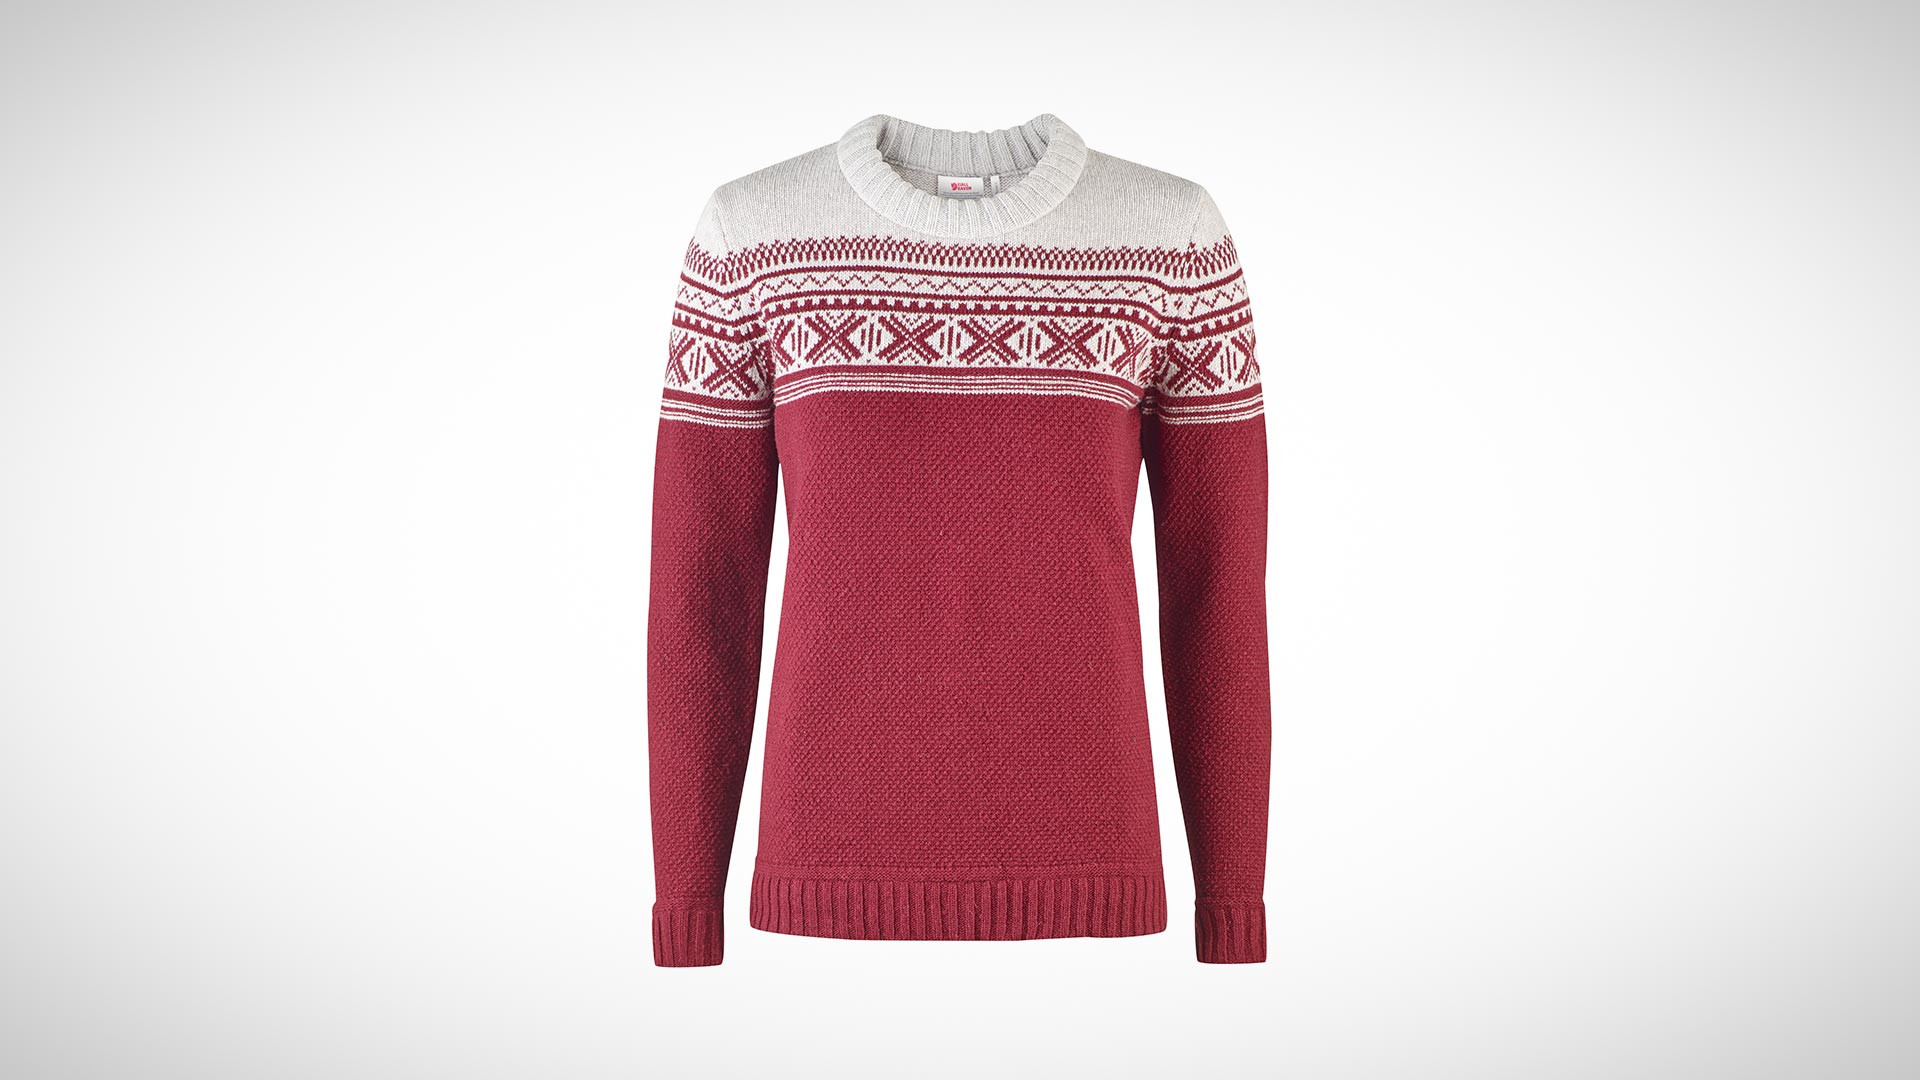 Fjallraven Övik knit sweater is a great gift for Christmas 2017